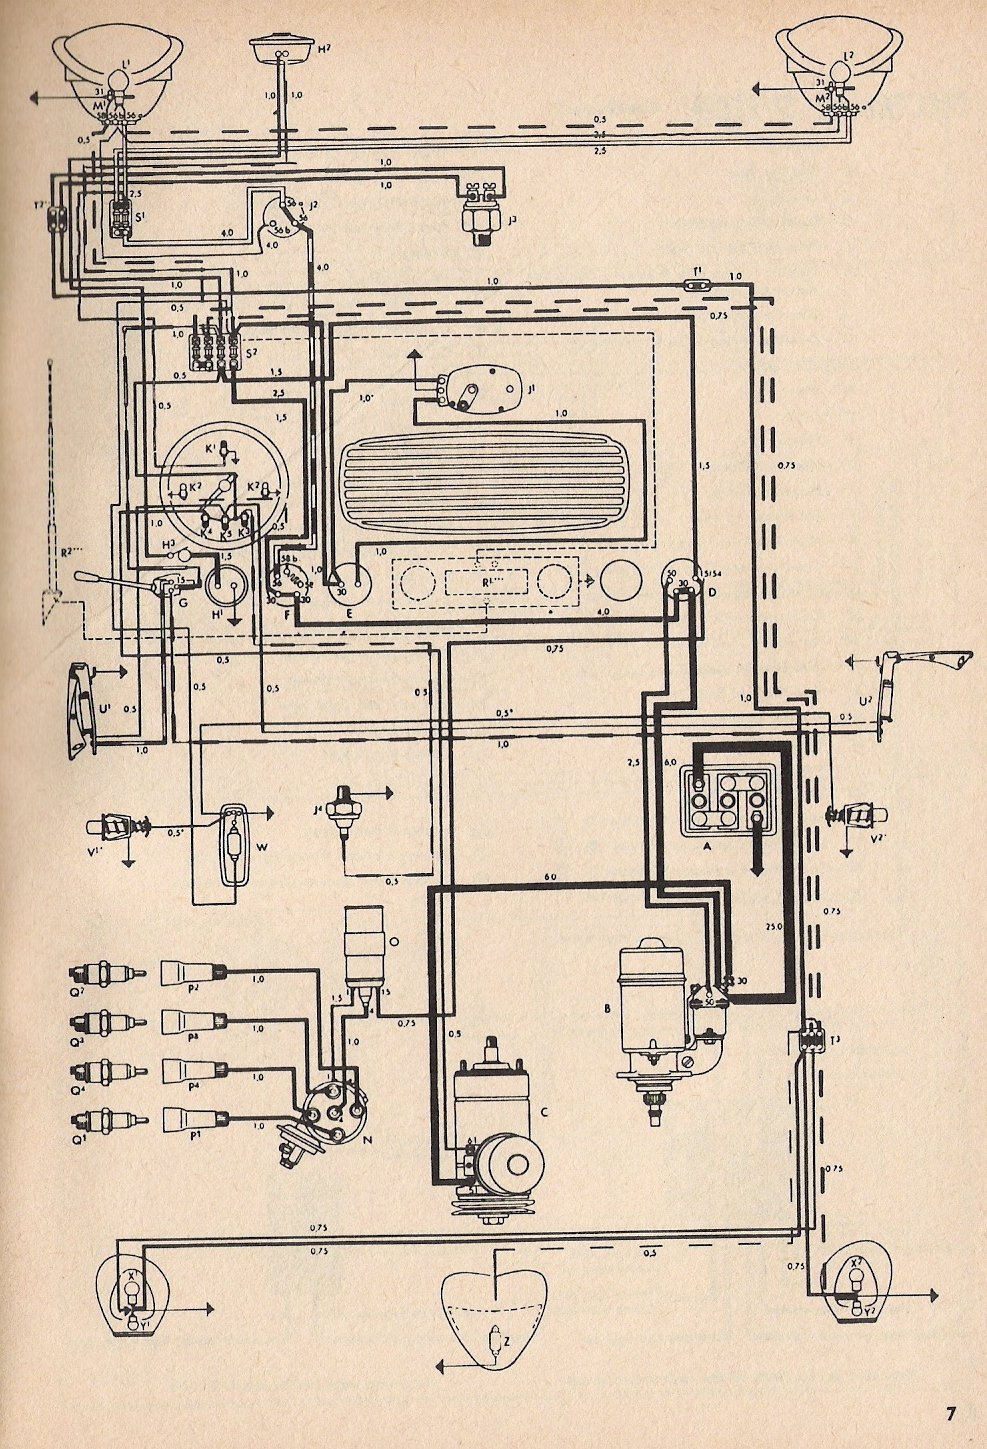 Type 1 Wiring Diagrams Mercedes Ignition Switch Diagram Free Download Image